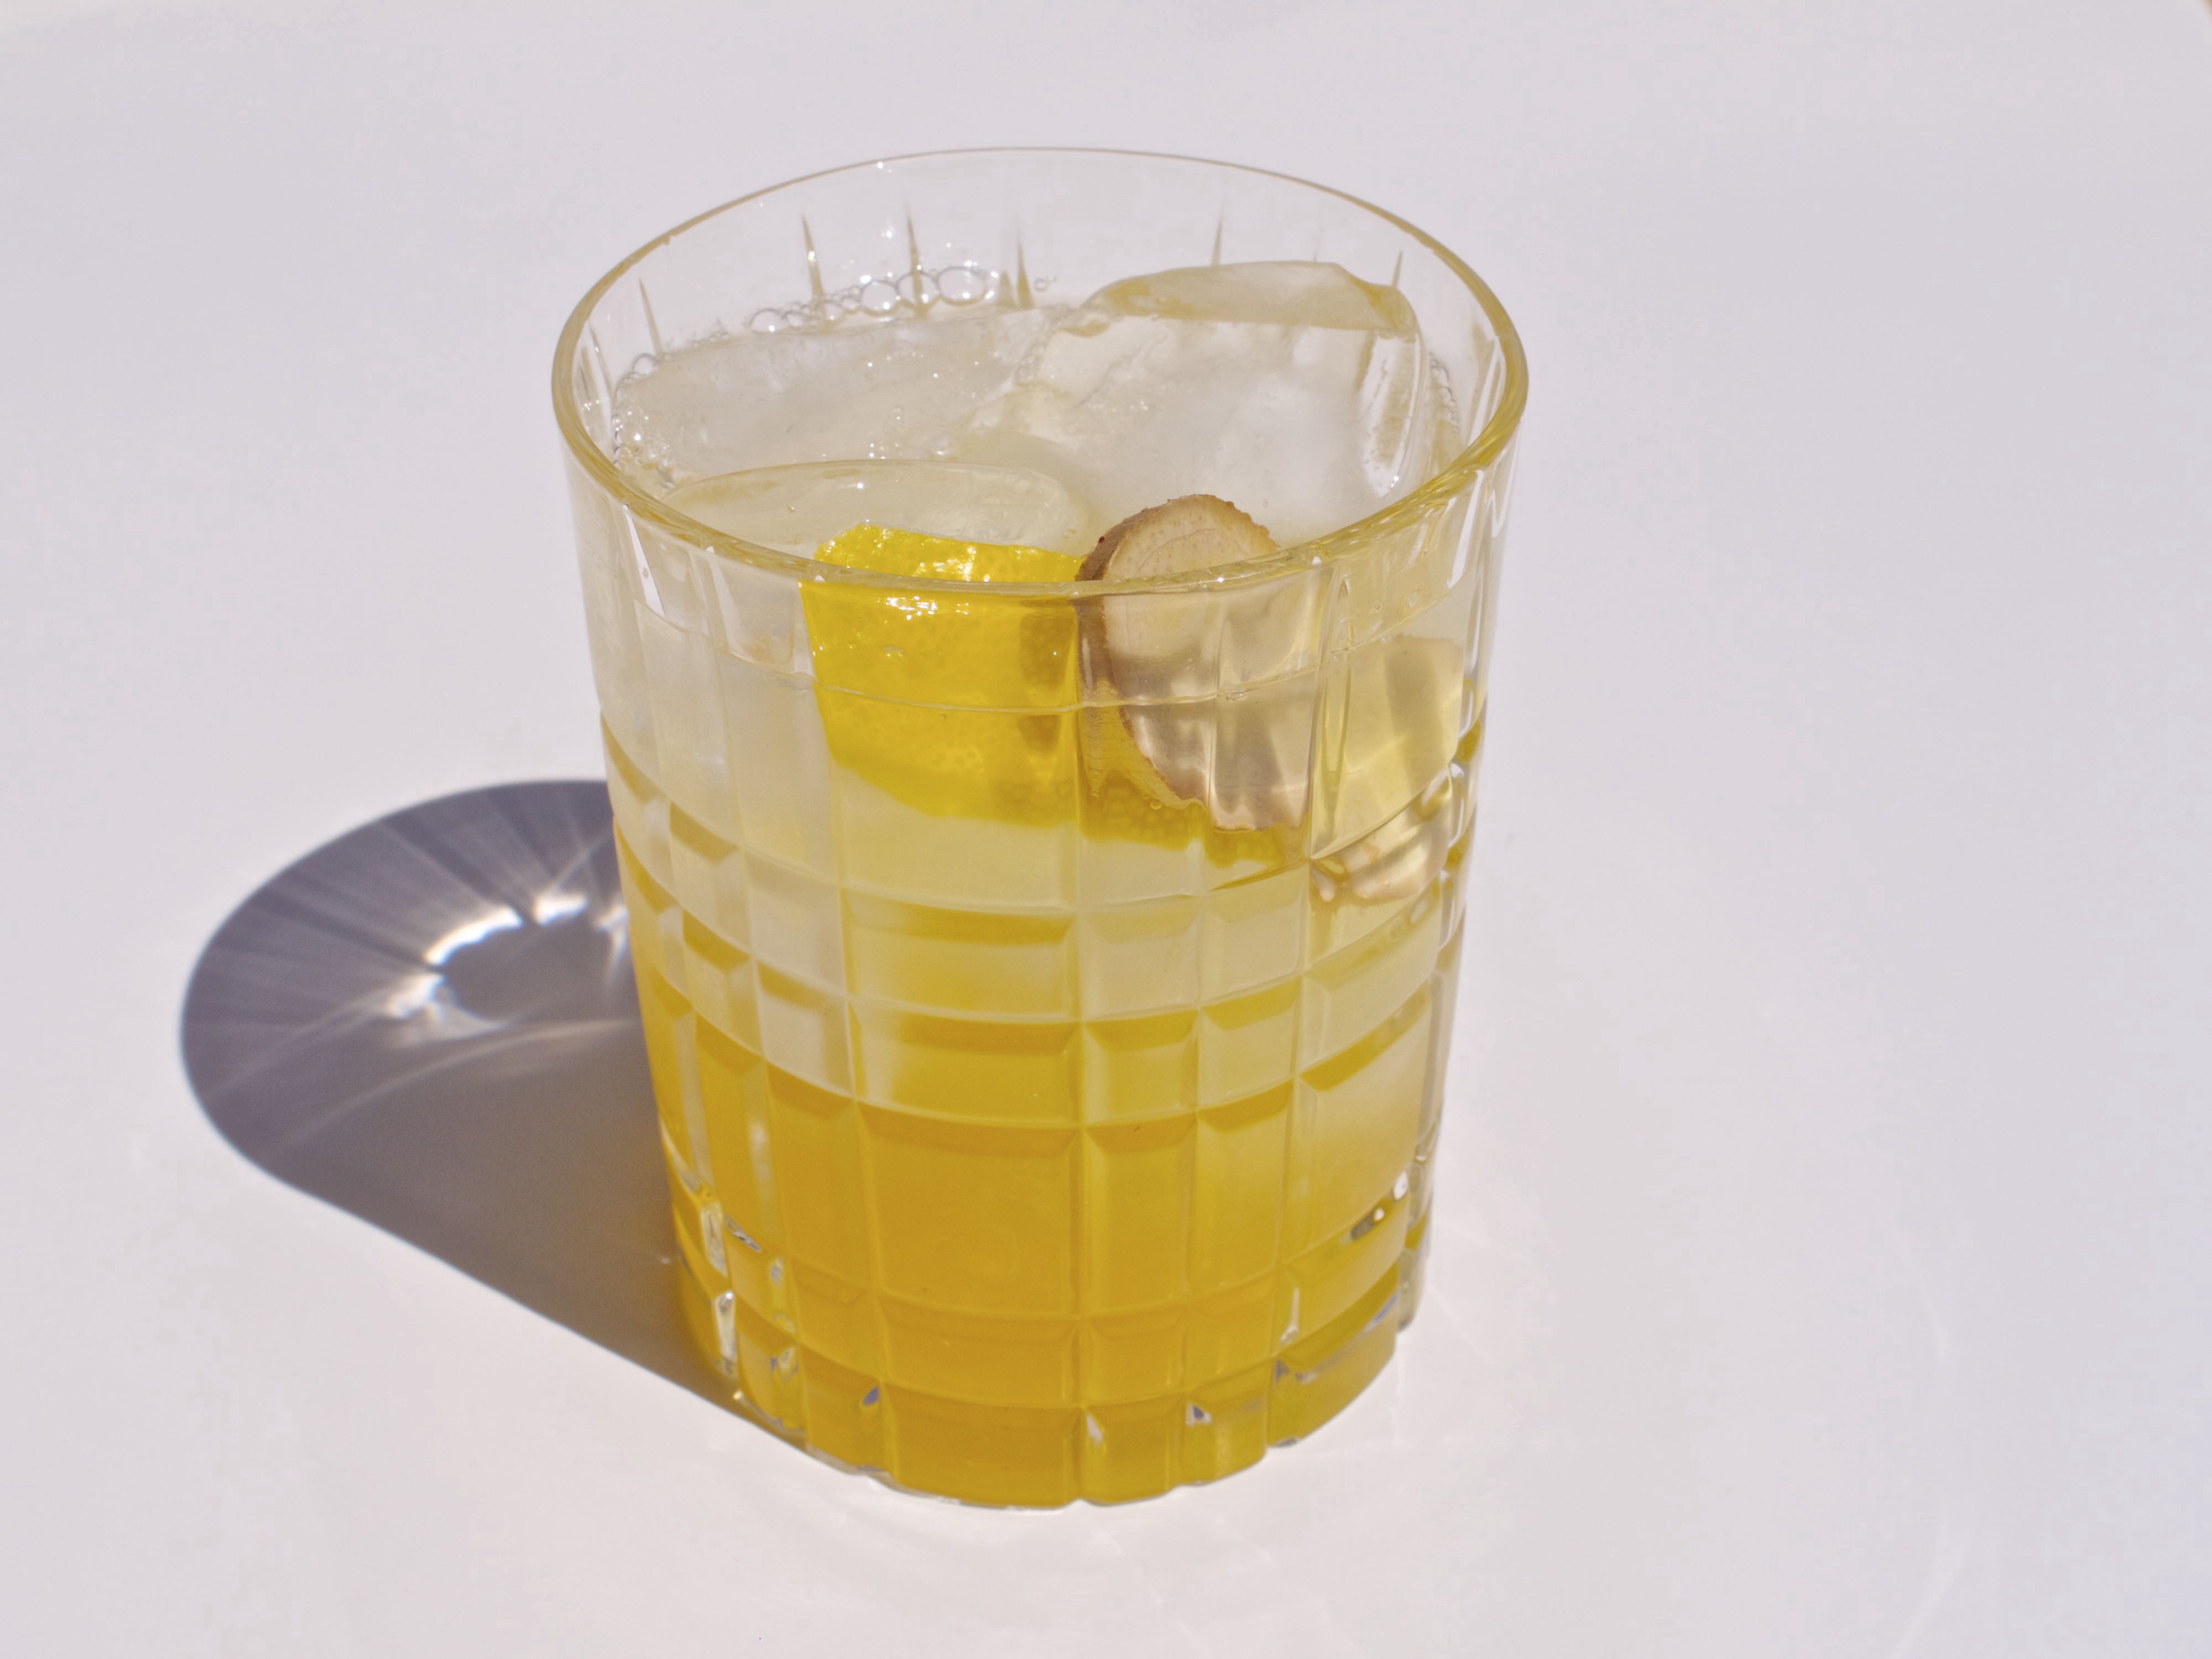 A transparent yellow drink with ice cubes on a white surface. A strong light source causes the glass to cast a shadow.